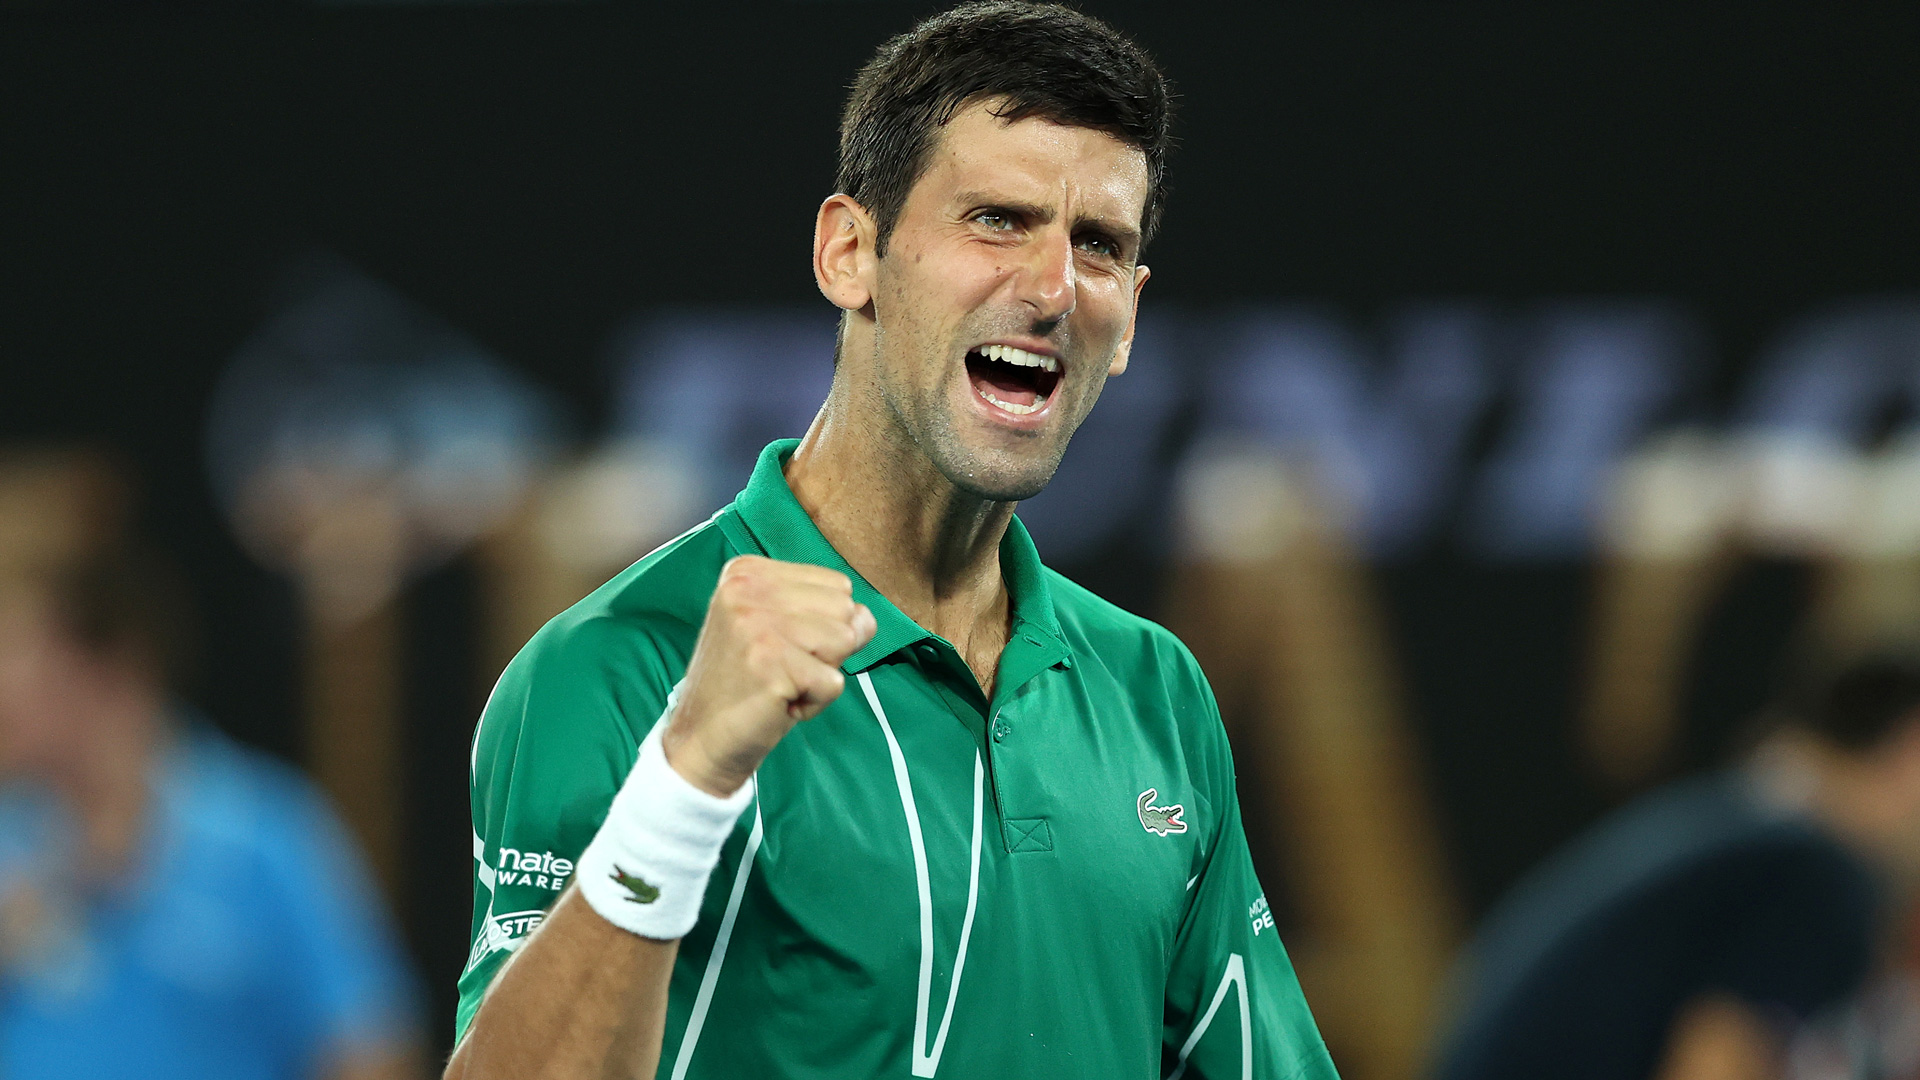 Australian Open 2020: Djokovic happy with form ahead of eighth final in Melbourne